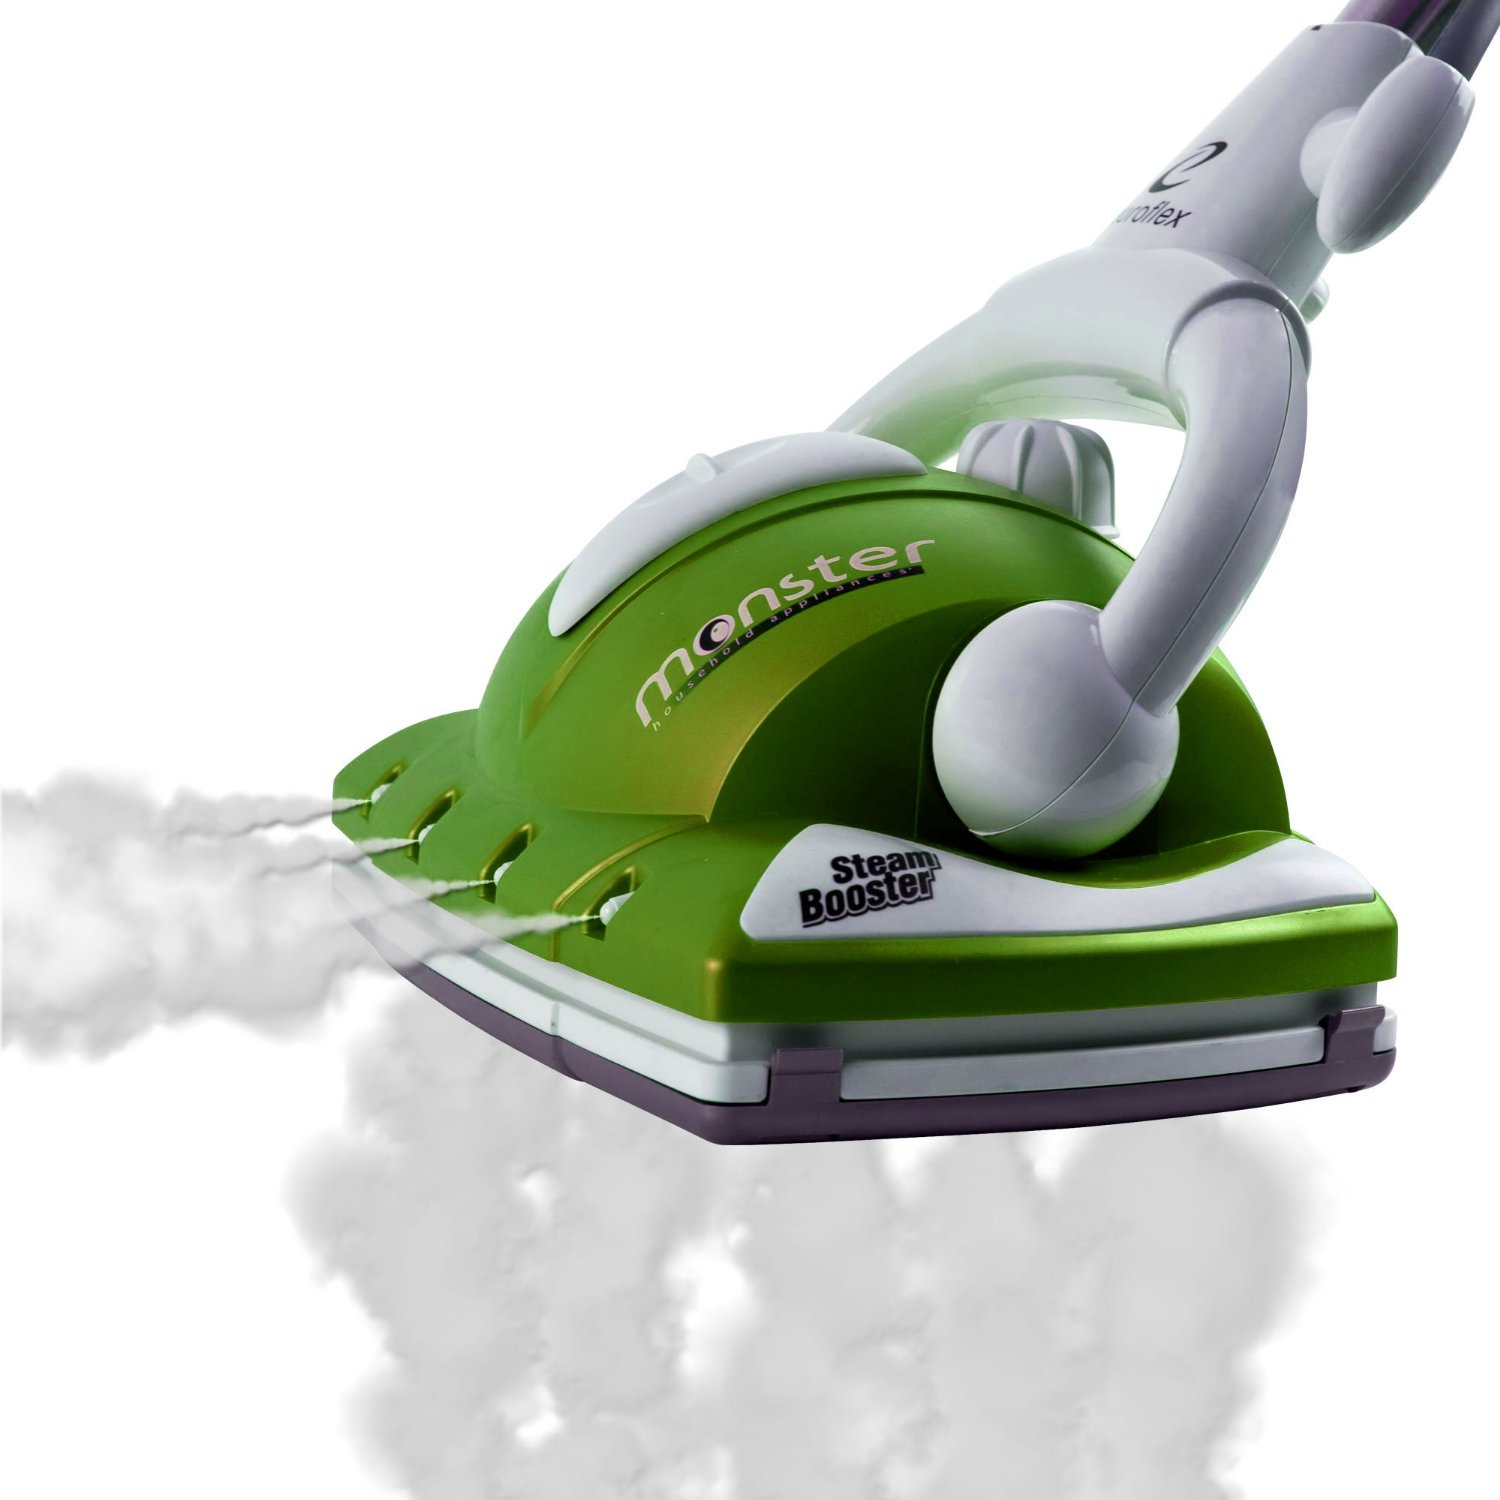 Euroflex Monster Steam Jet II 1200w Disinfecting Floor Steam Cleaner. Best  Disinfectant Steam Mop